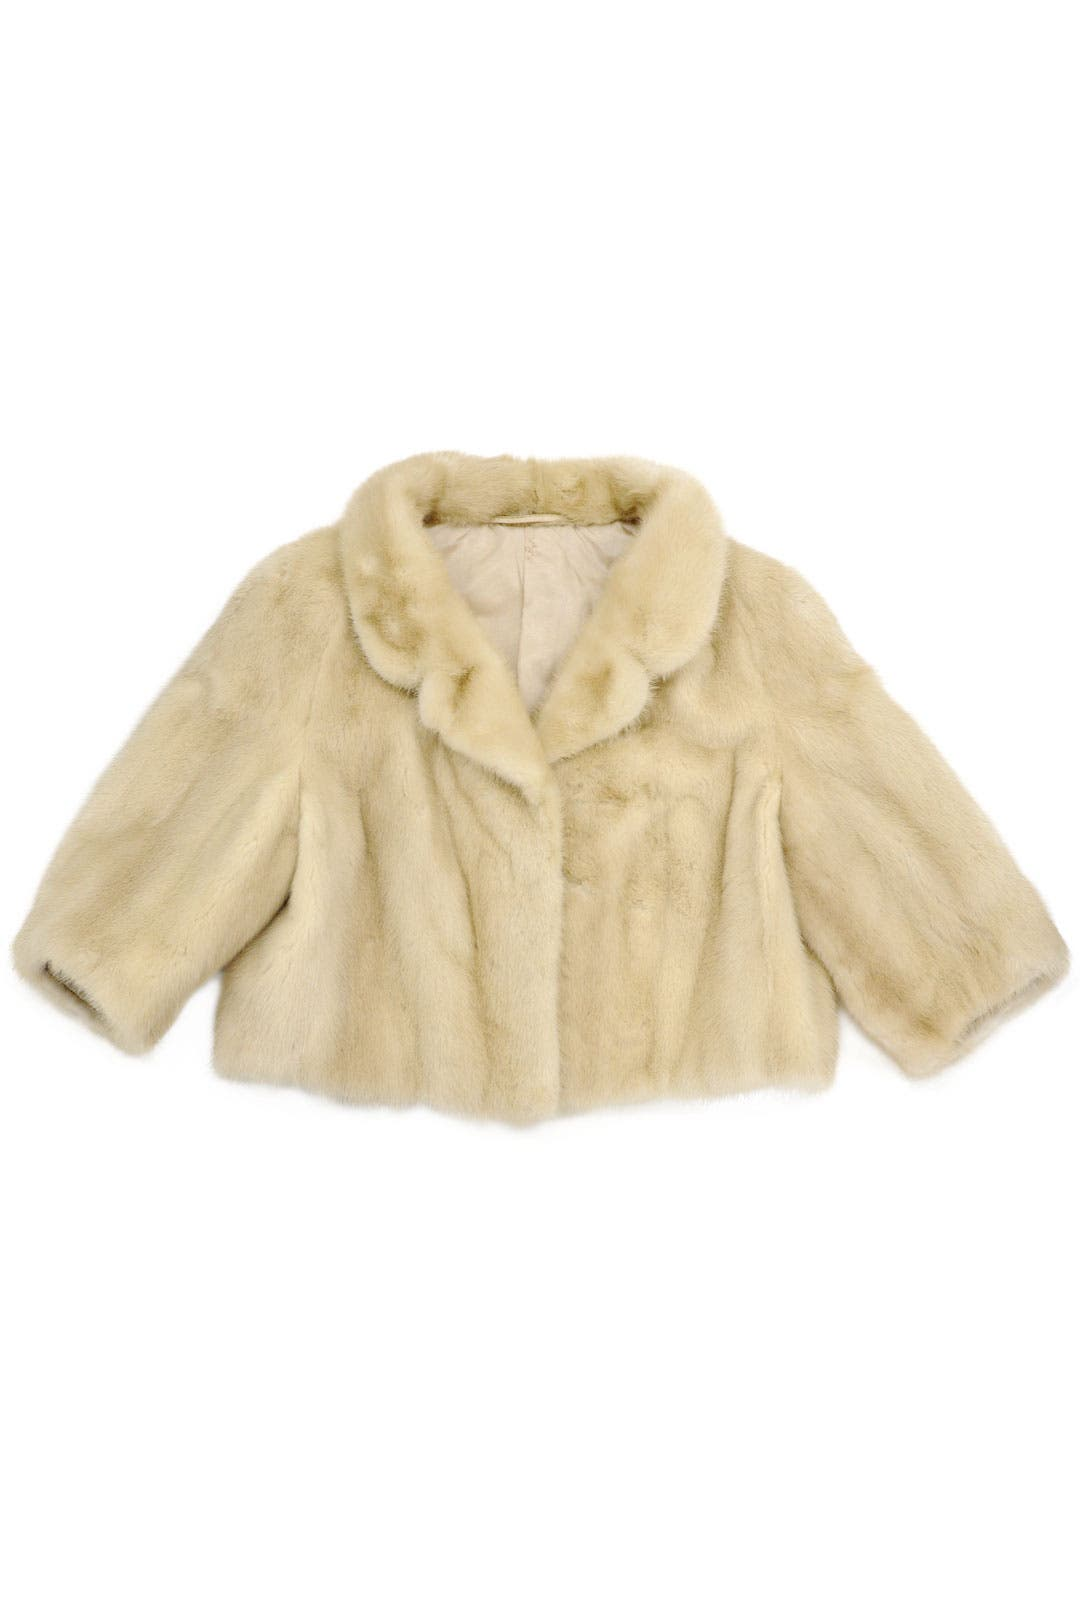 Blonde Mink Jacket by Decades Vintage